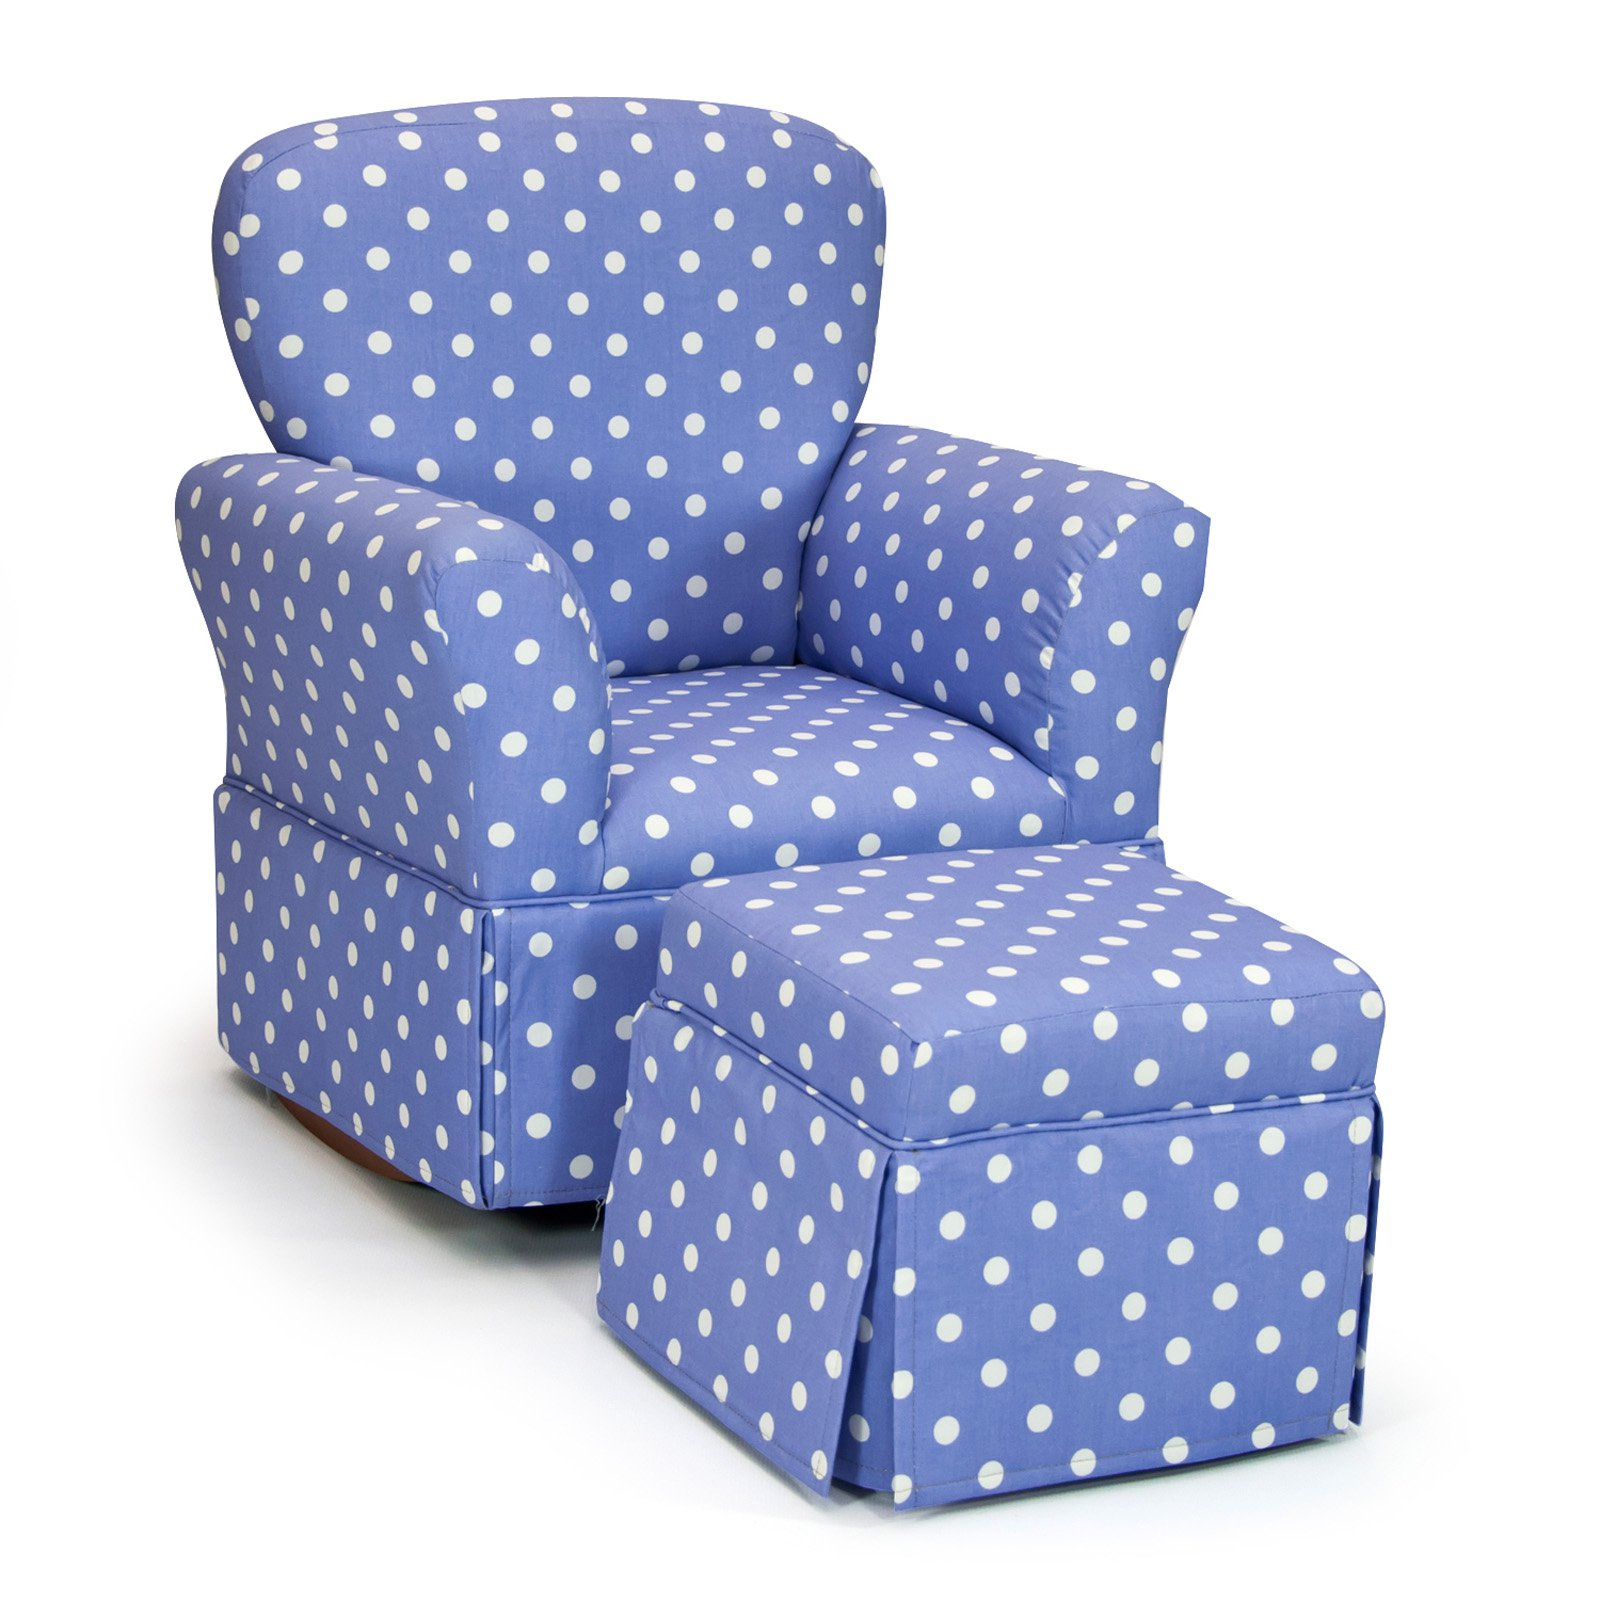 Kidz World Skirted Rocker and Skirted Ottoman Set In Polka Dots Lilac with White